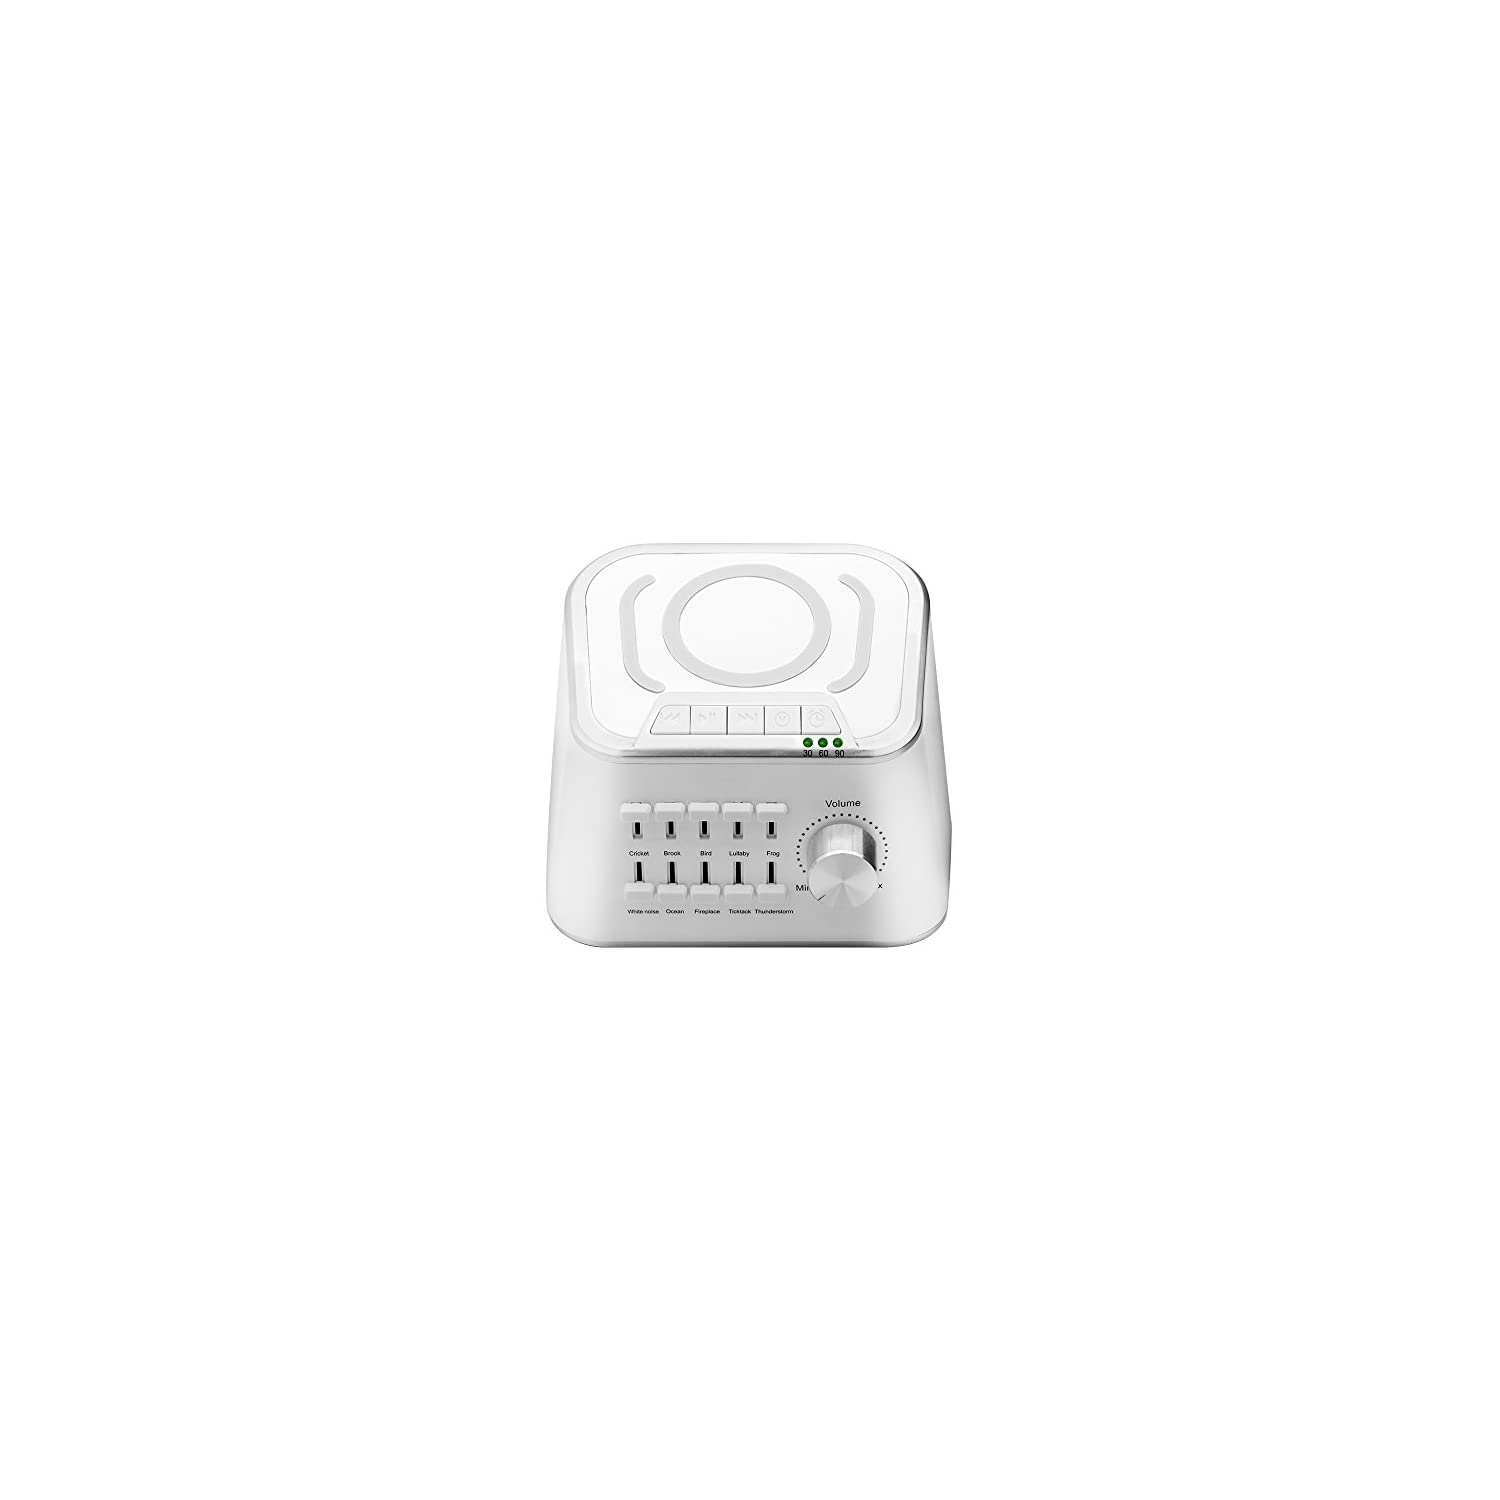 BACKTURE White Noise Sound Machine Sleep Therapy Machine with 10 Natural Sounds Mixing or Individually Played Includes Timer and USB Output Charger (White)